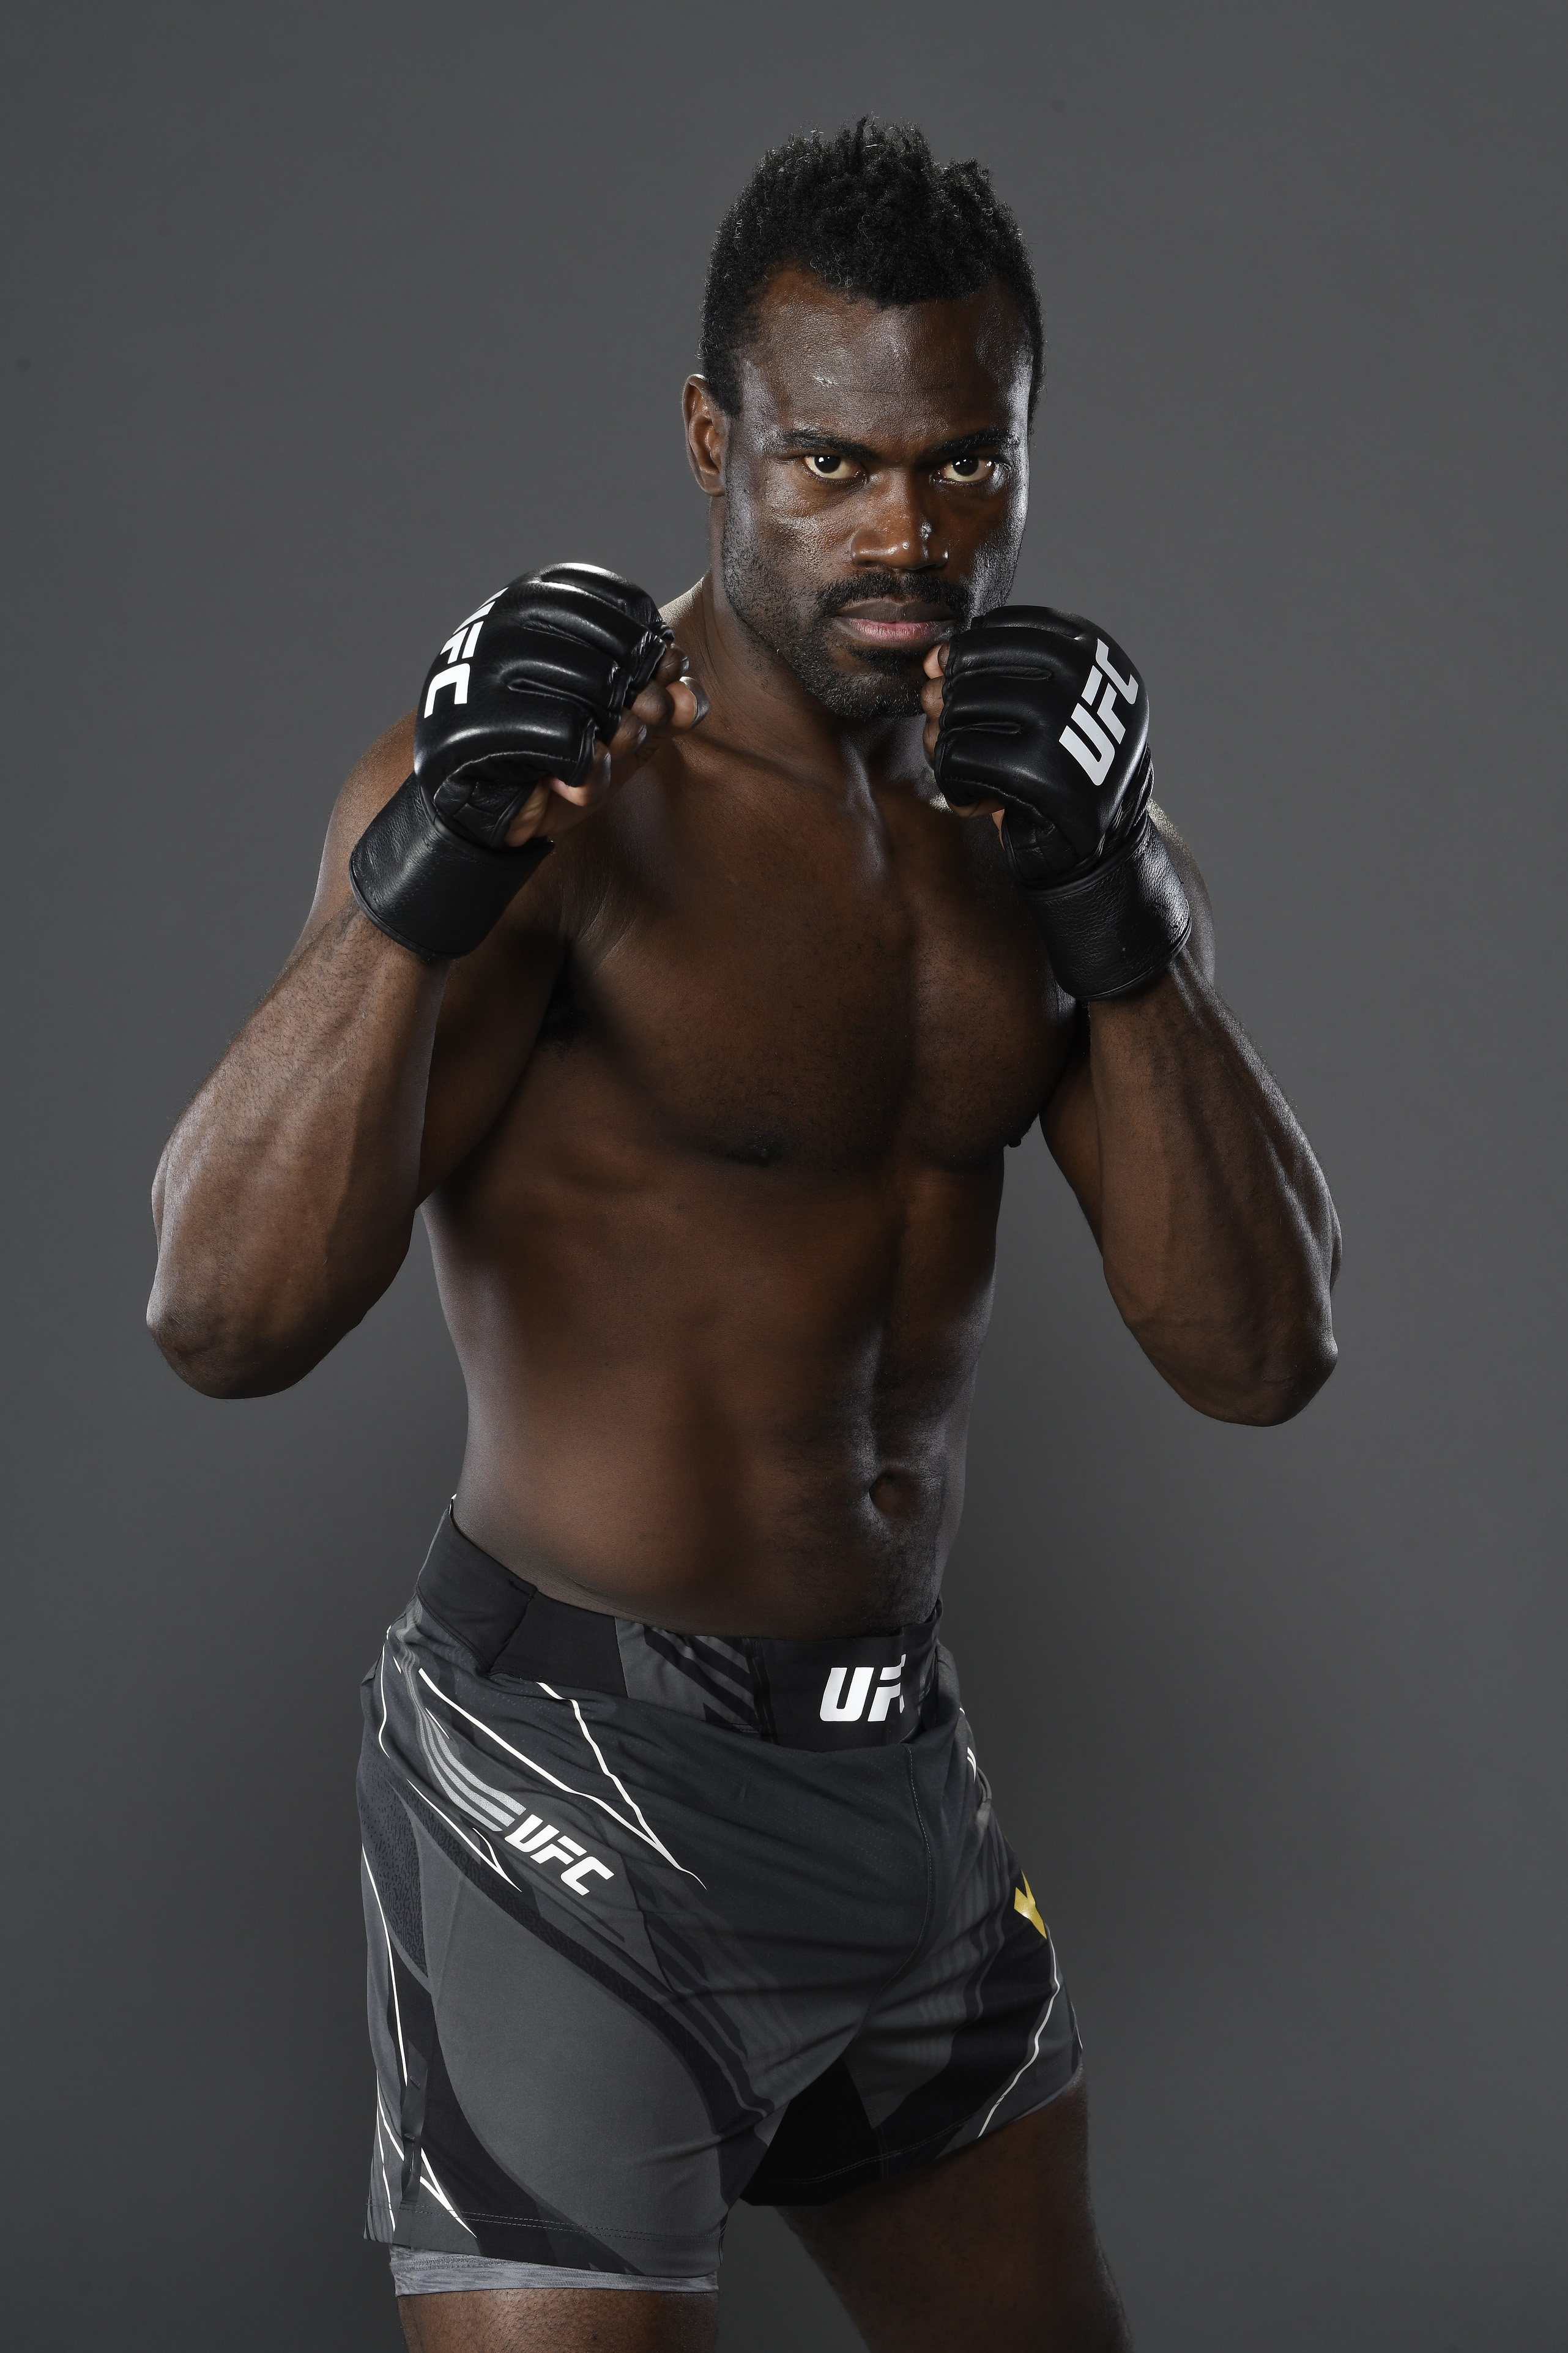 Uriah Hall of Jamaica poses for a post fight portrait backstage during the UFC 261 event at VyStar Veterans Memorial Arena on April 24, 2021 in Jacksonville, Florida.